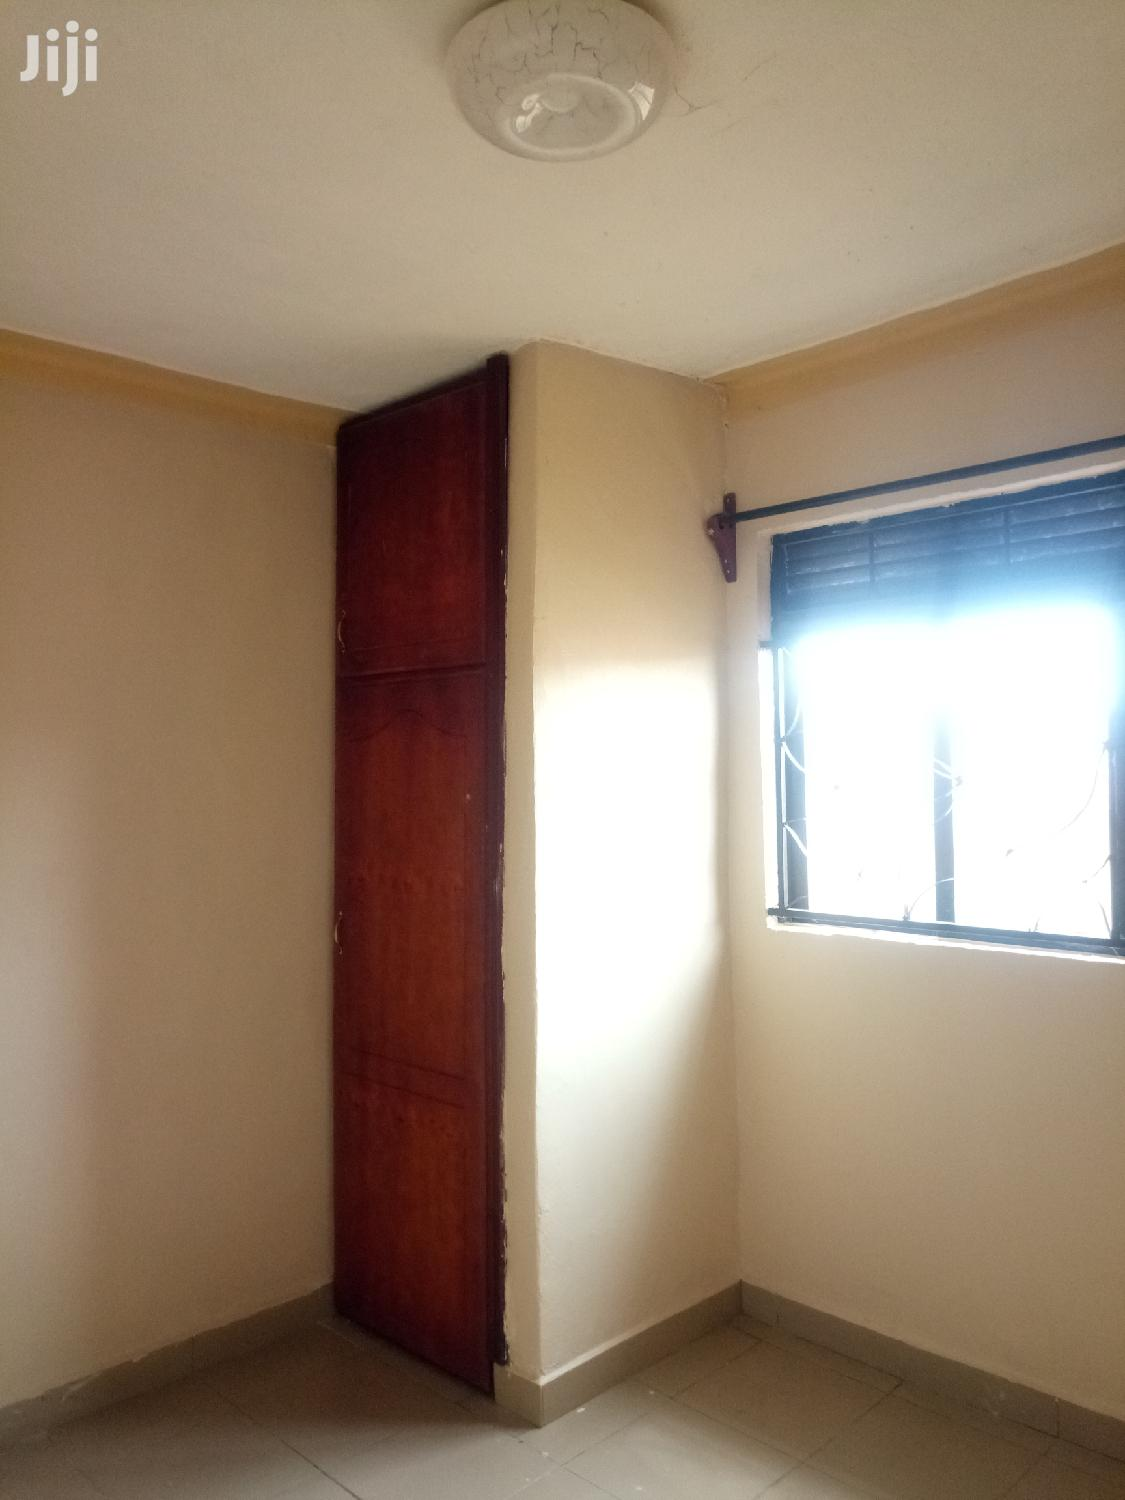 Clean Double Rooms for Rent in Bukoto